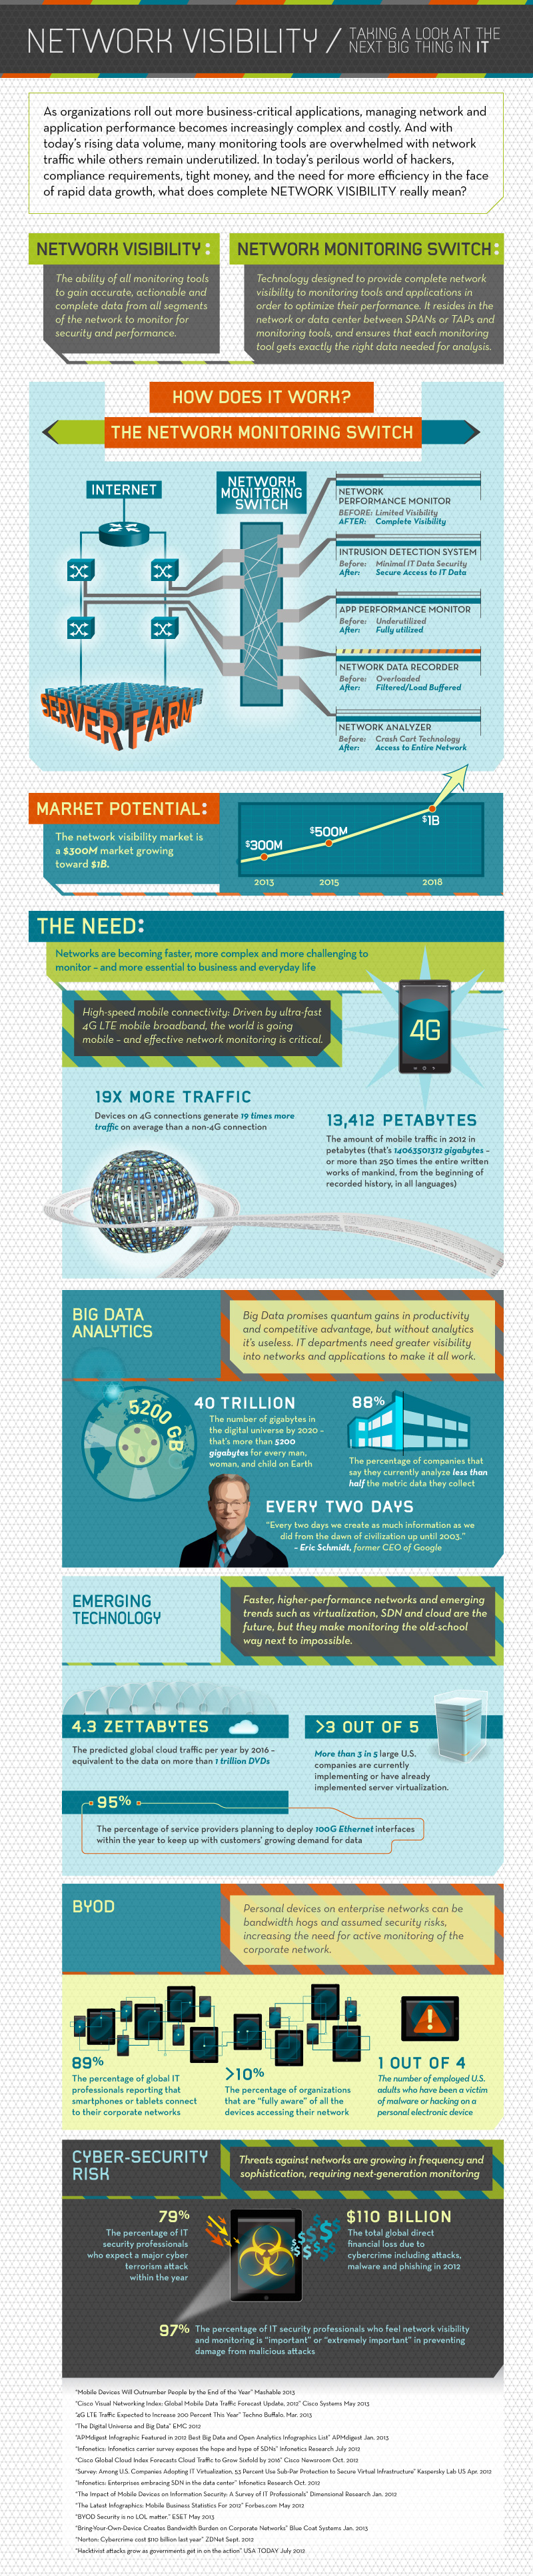 ixia_network_visibility_infographic.jpg